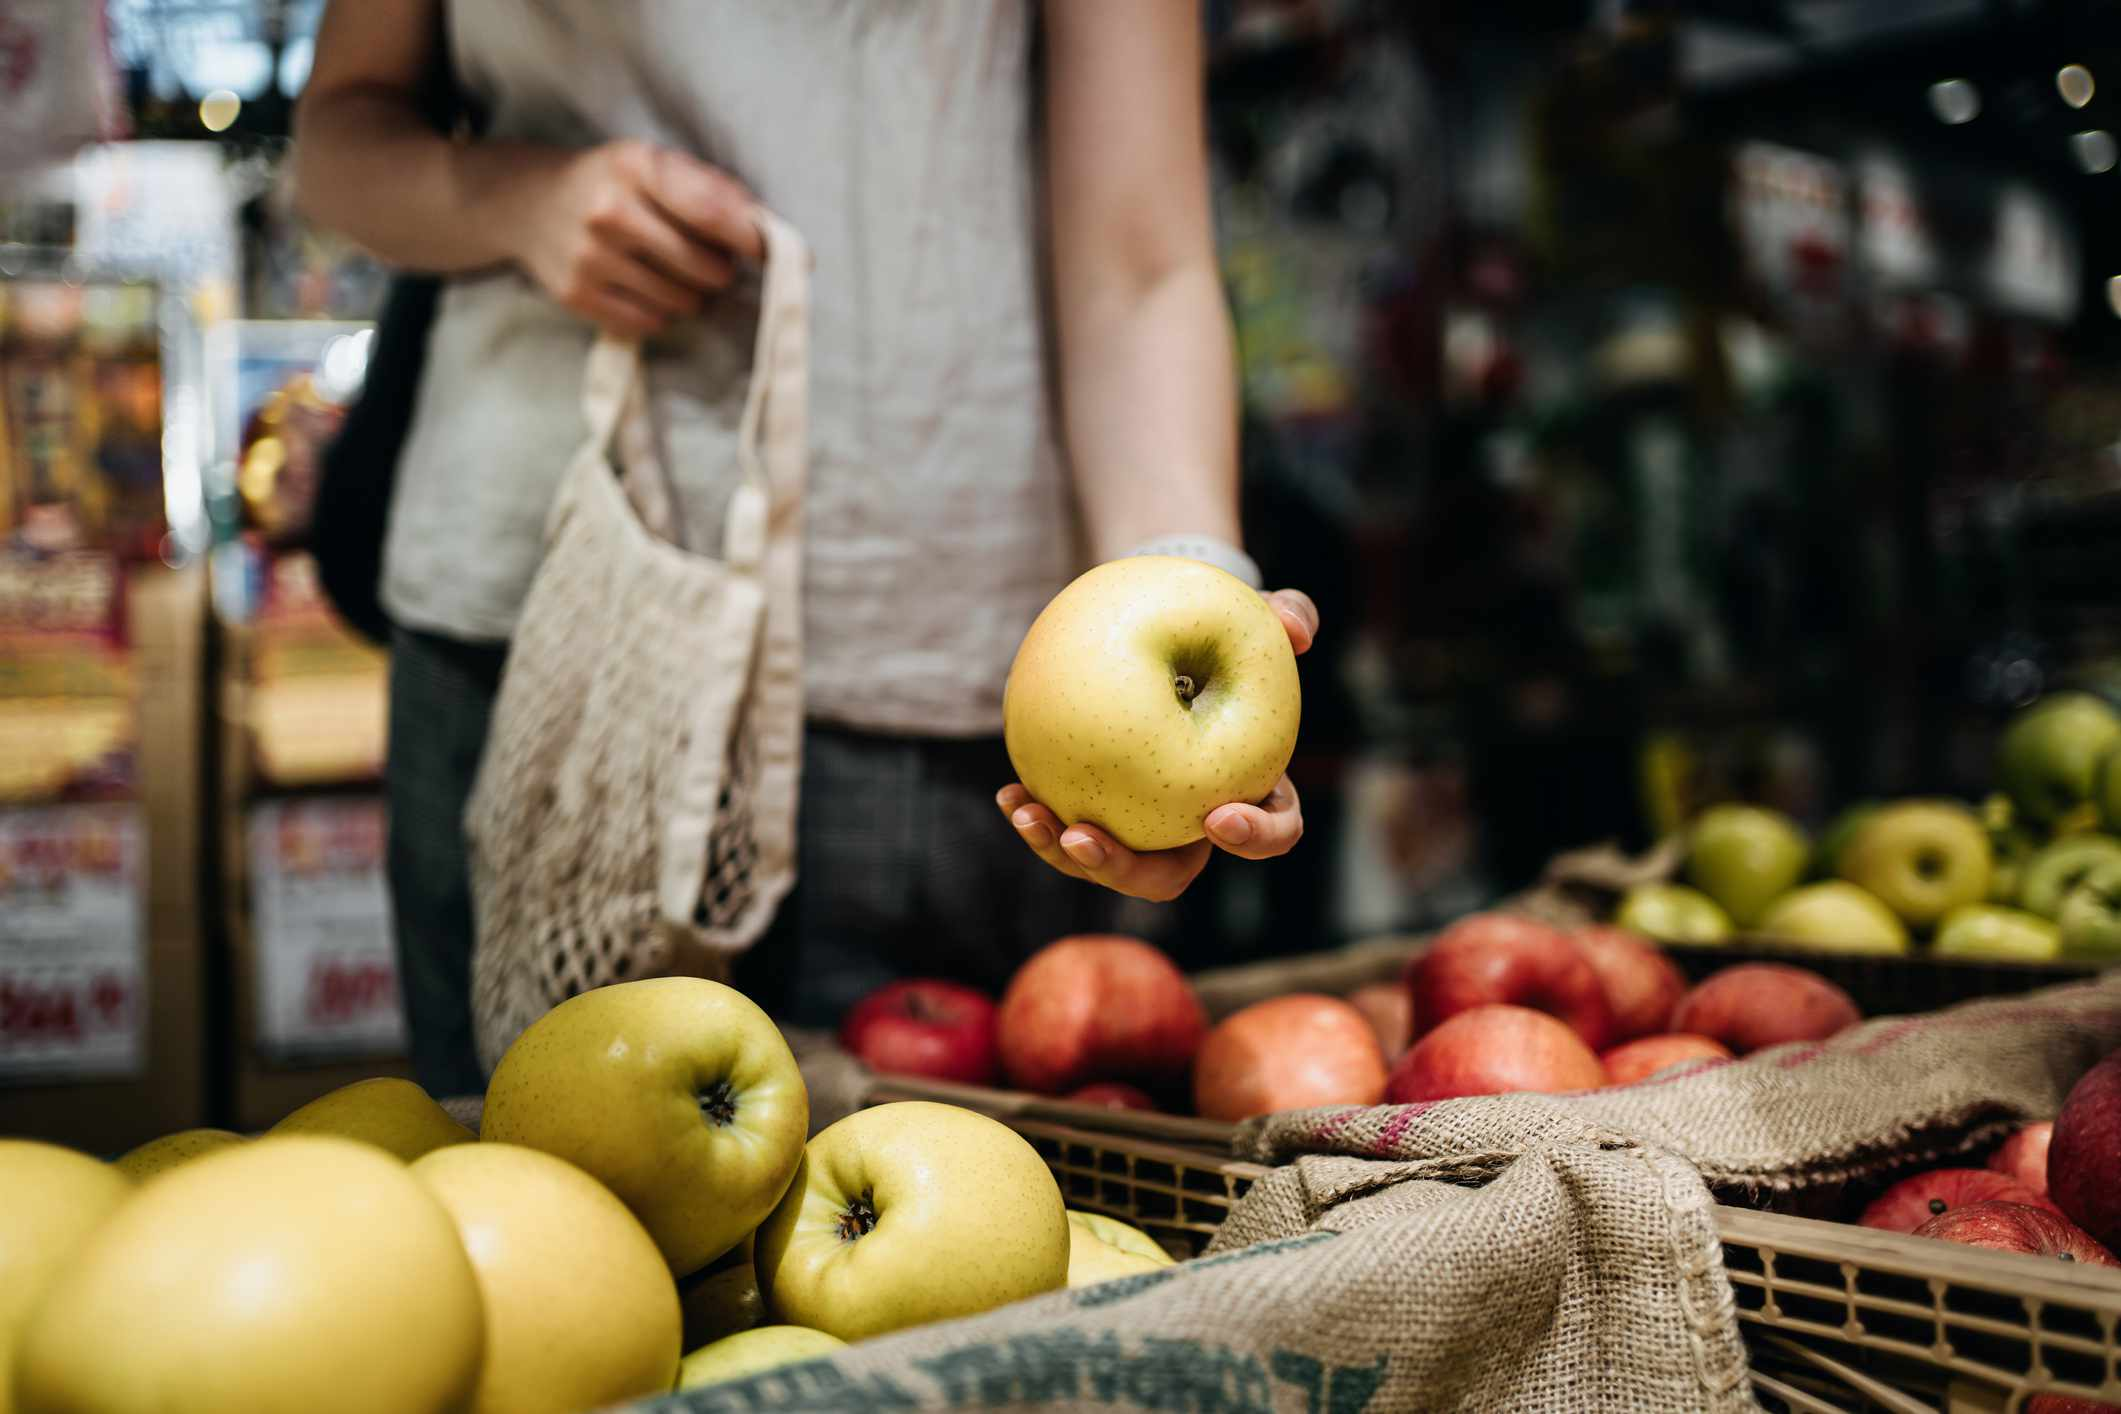 A woman picking up an apple at a store.